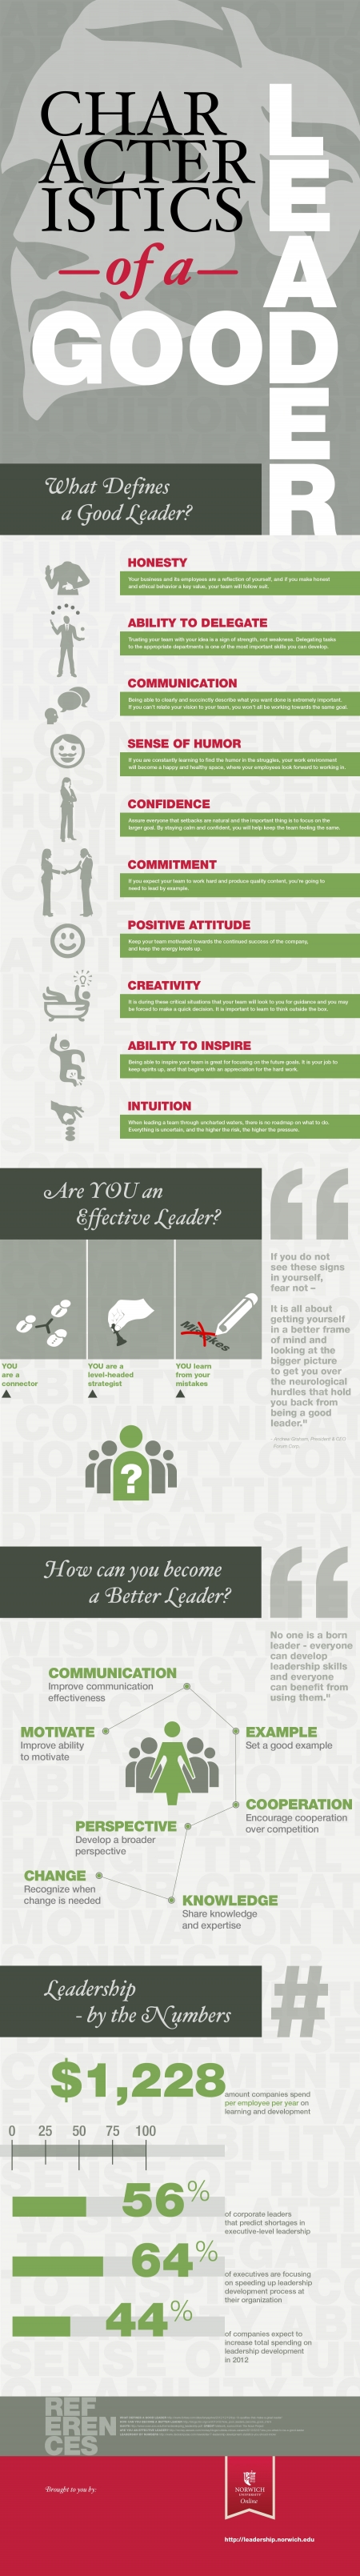 Characteristics of a Good Leader [Infographic]